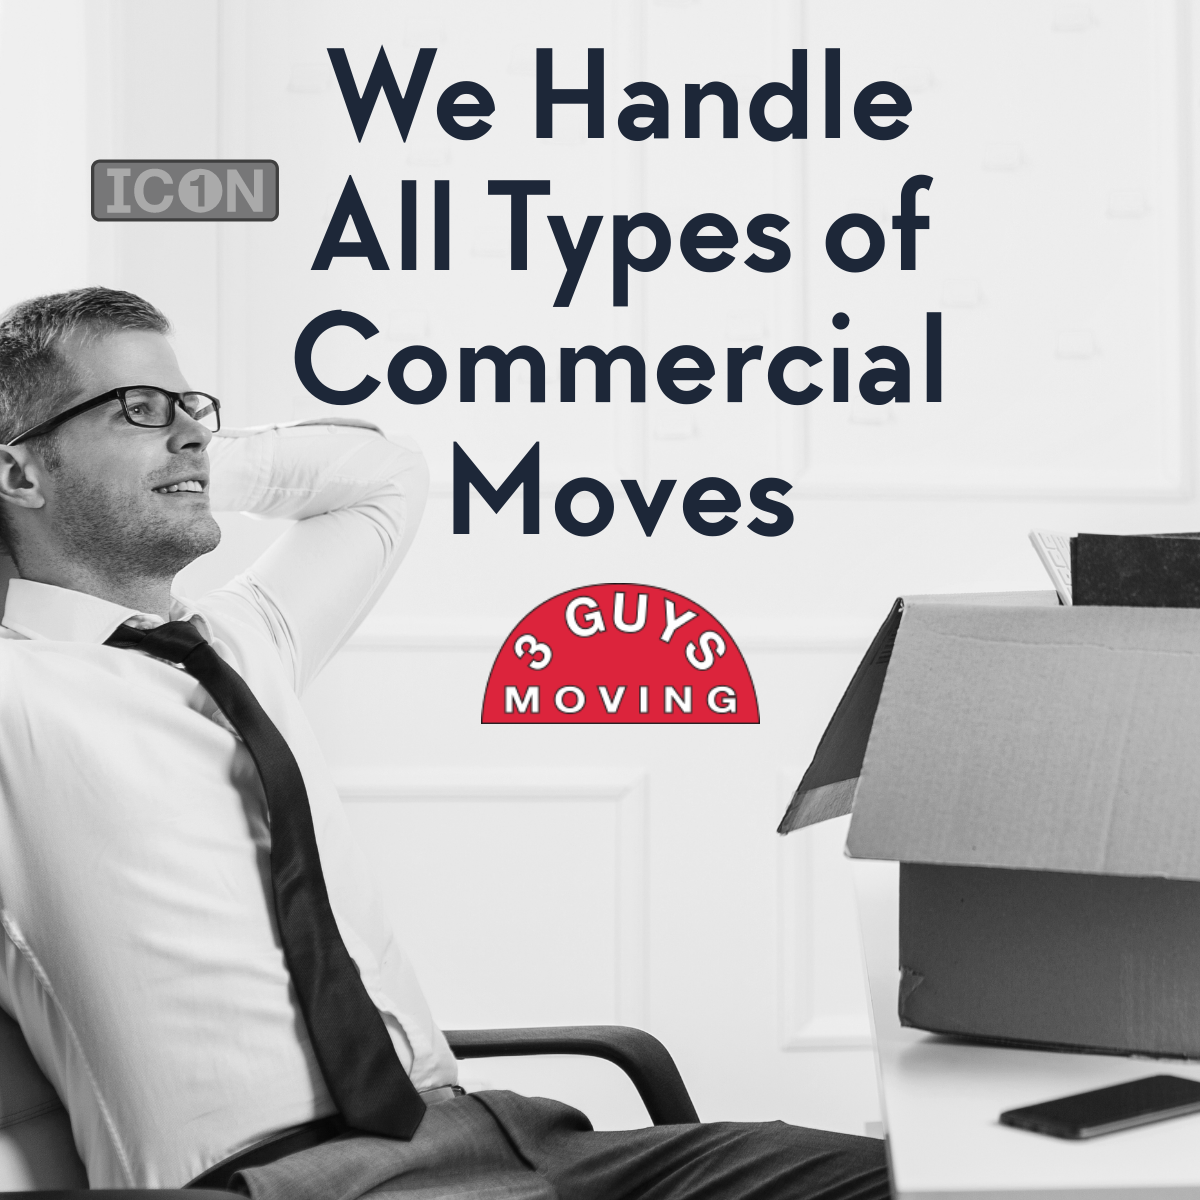 Commercial Moves - We Handle All Types of Commercial Moves